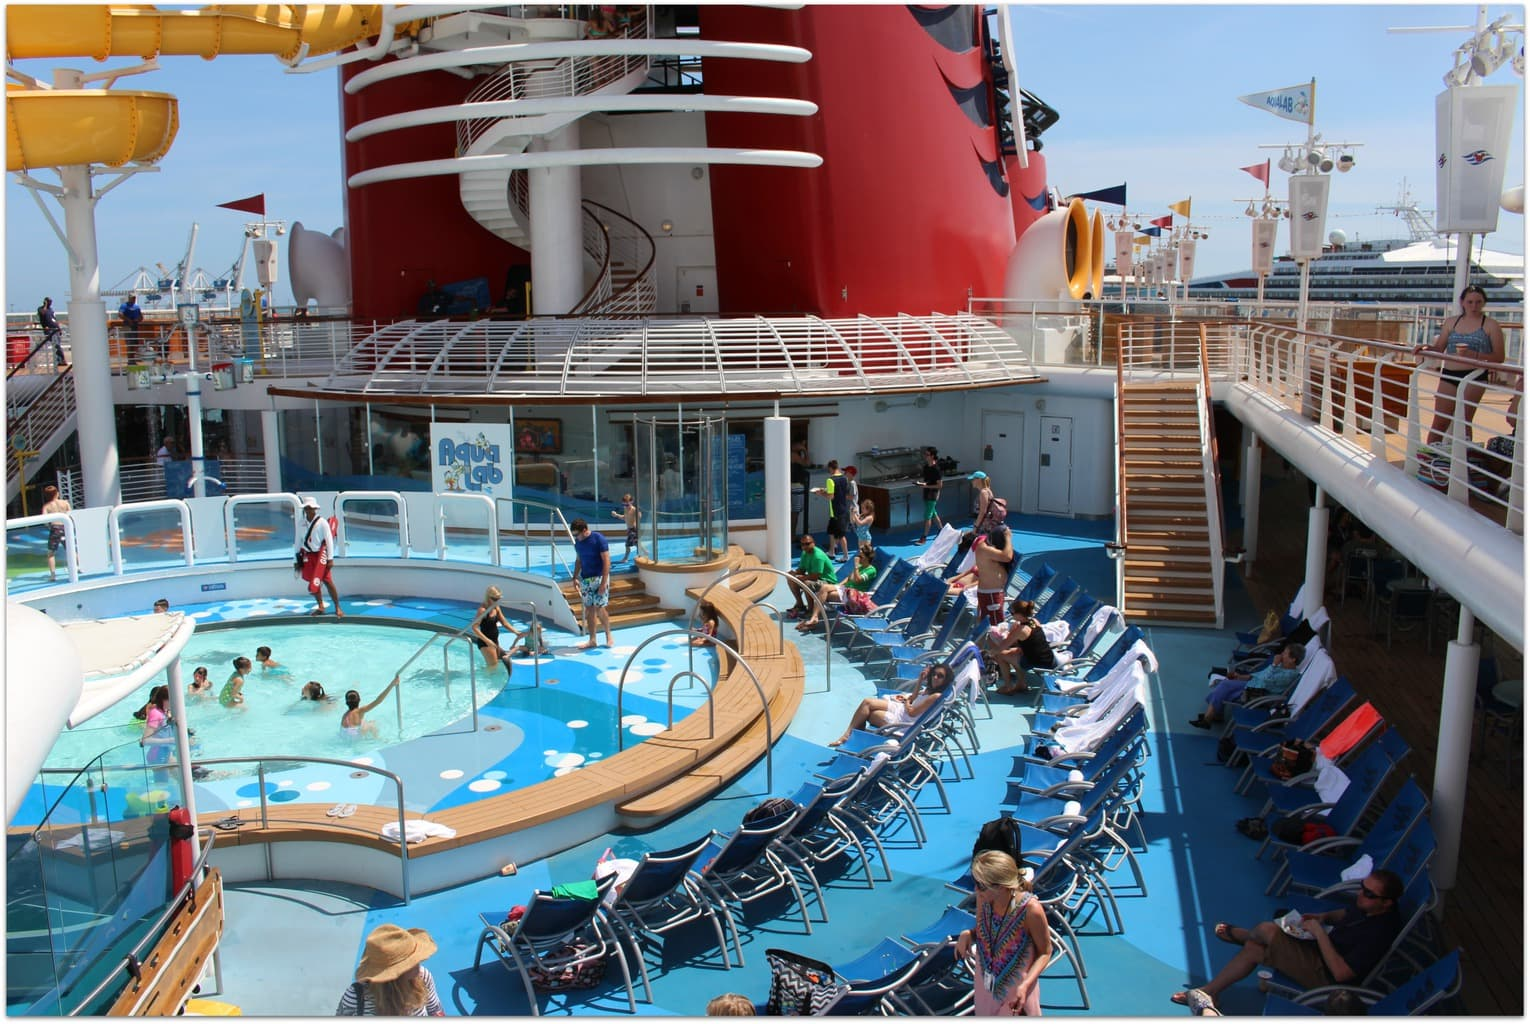 Have You Seen The Disney Magic Cruise Ship?